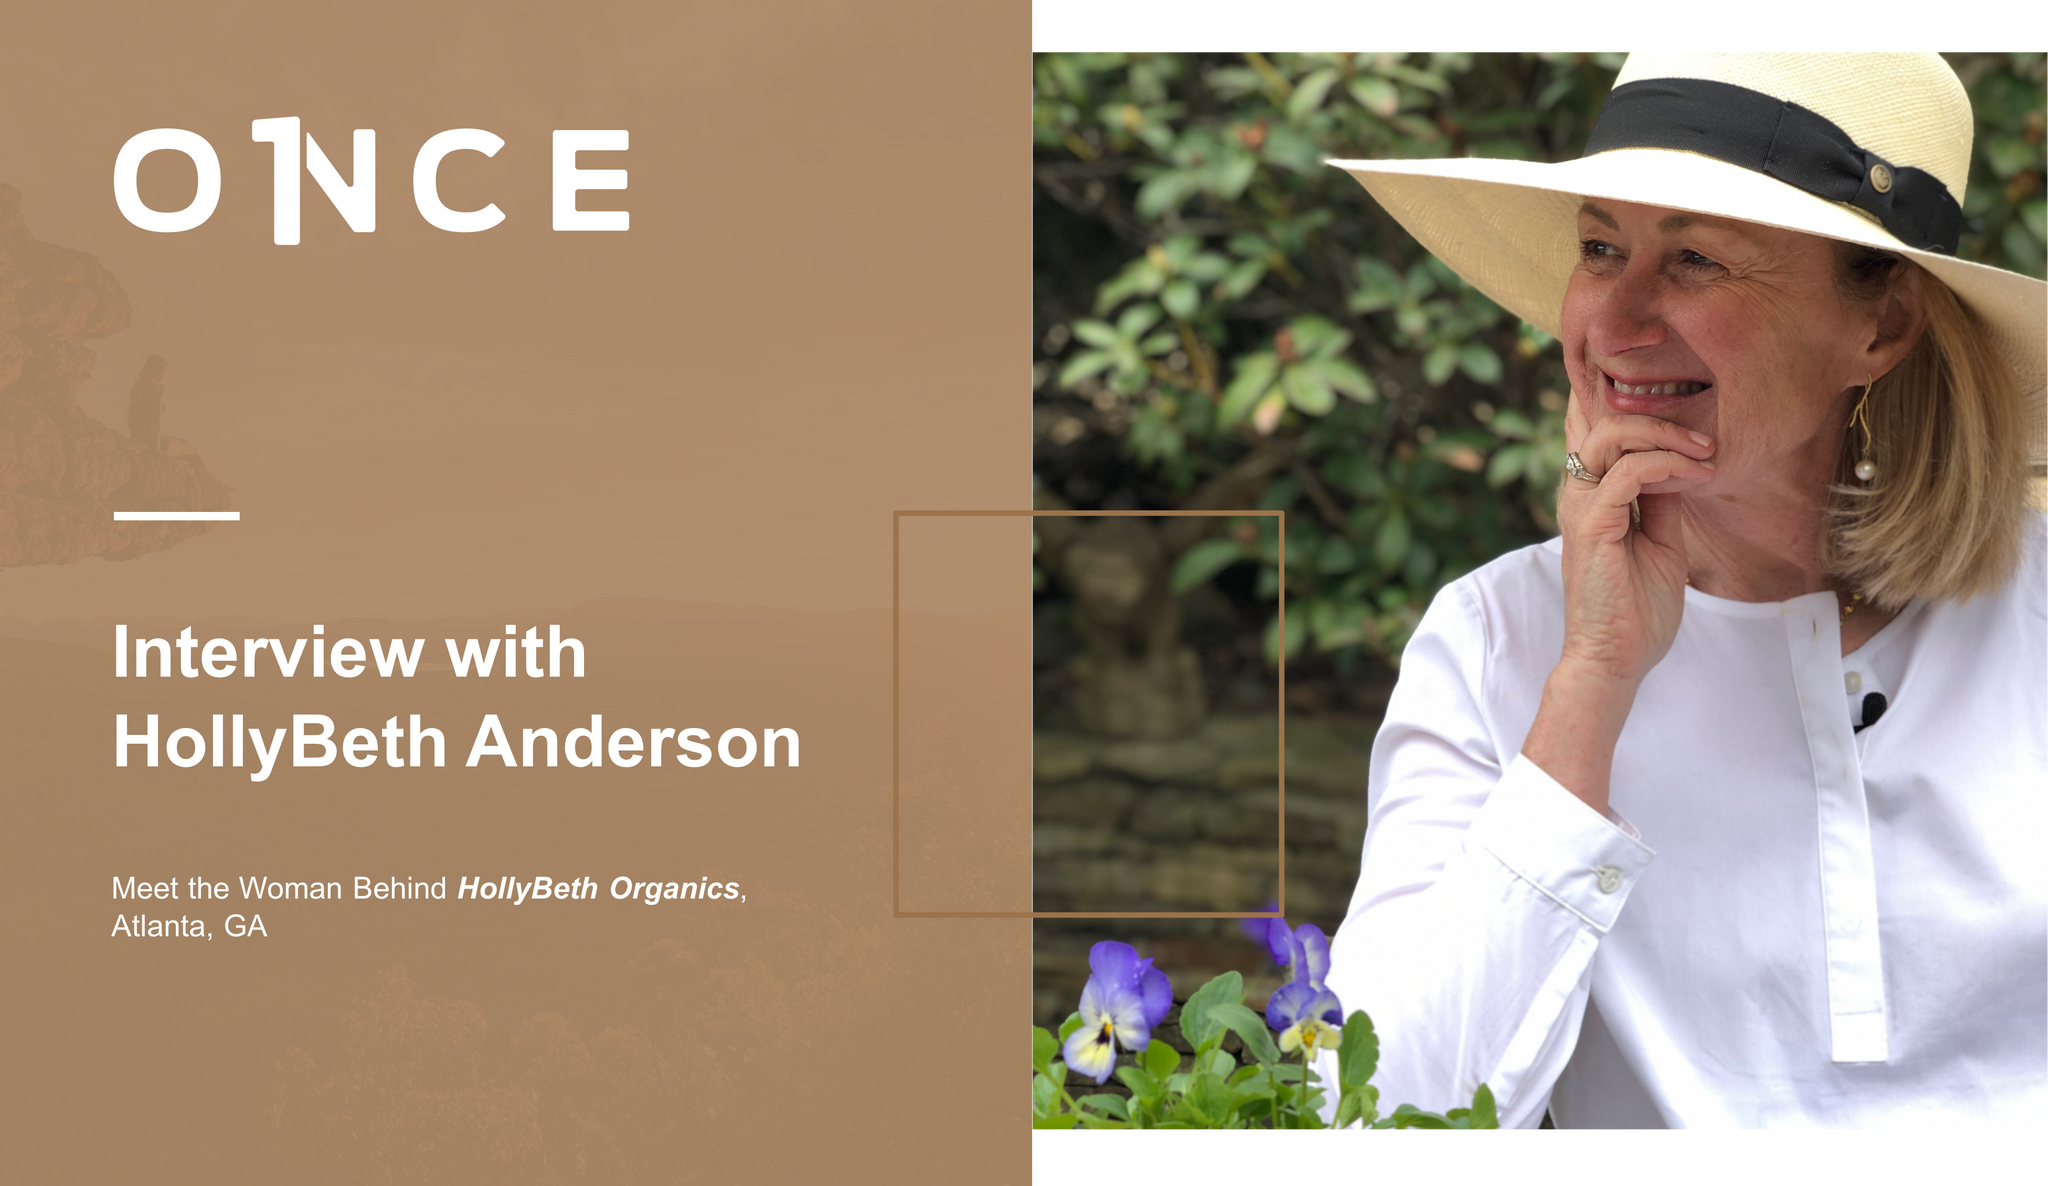 Image introducing an interview with HollyBeth Anderson of HollyBeth Organics